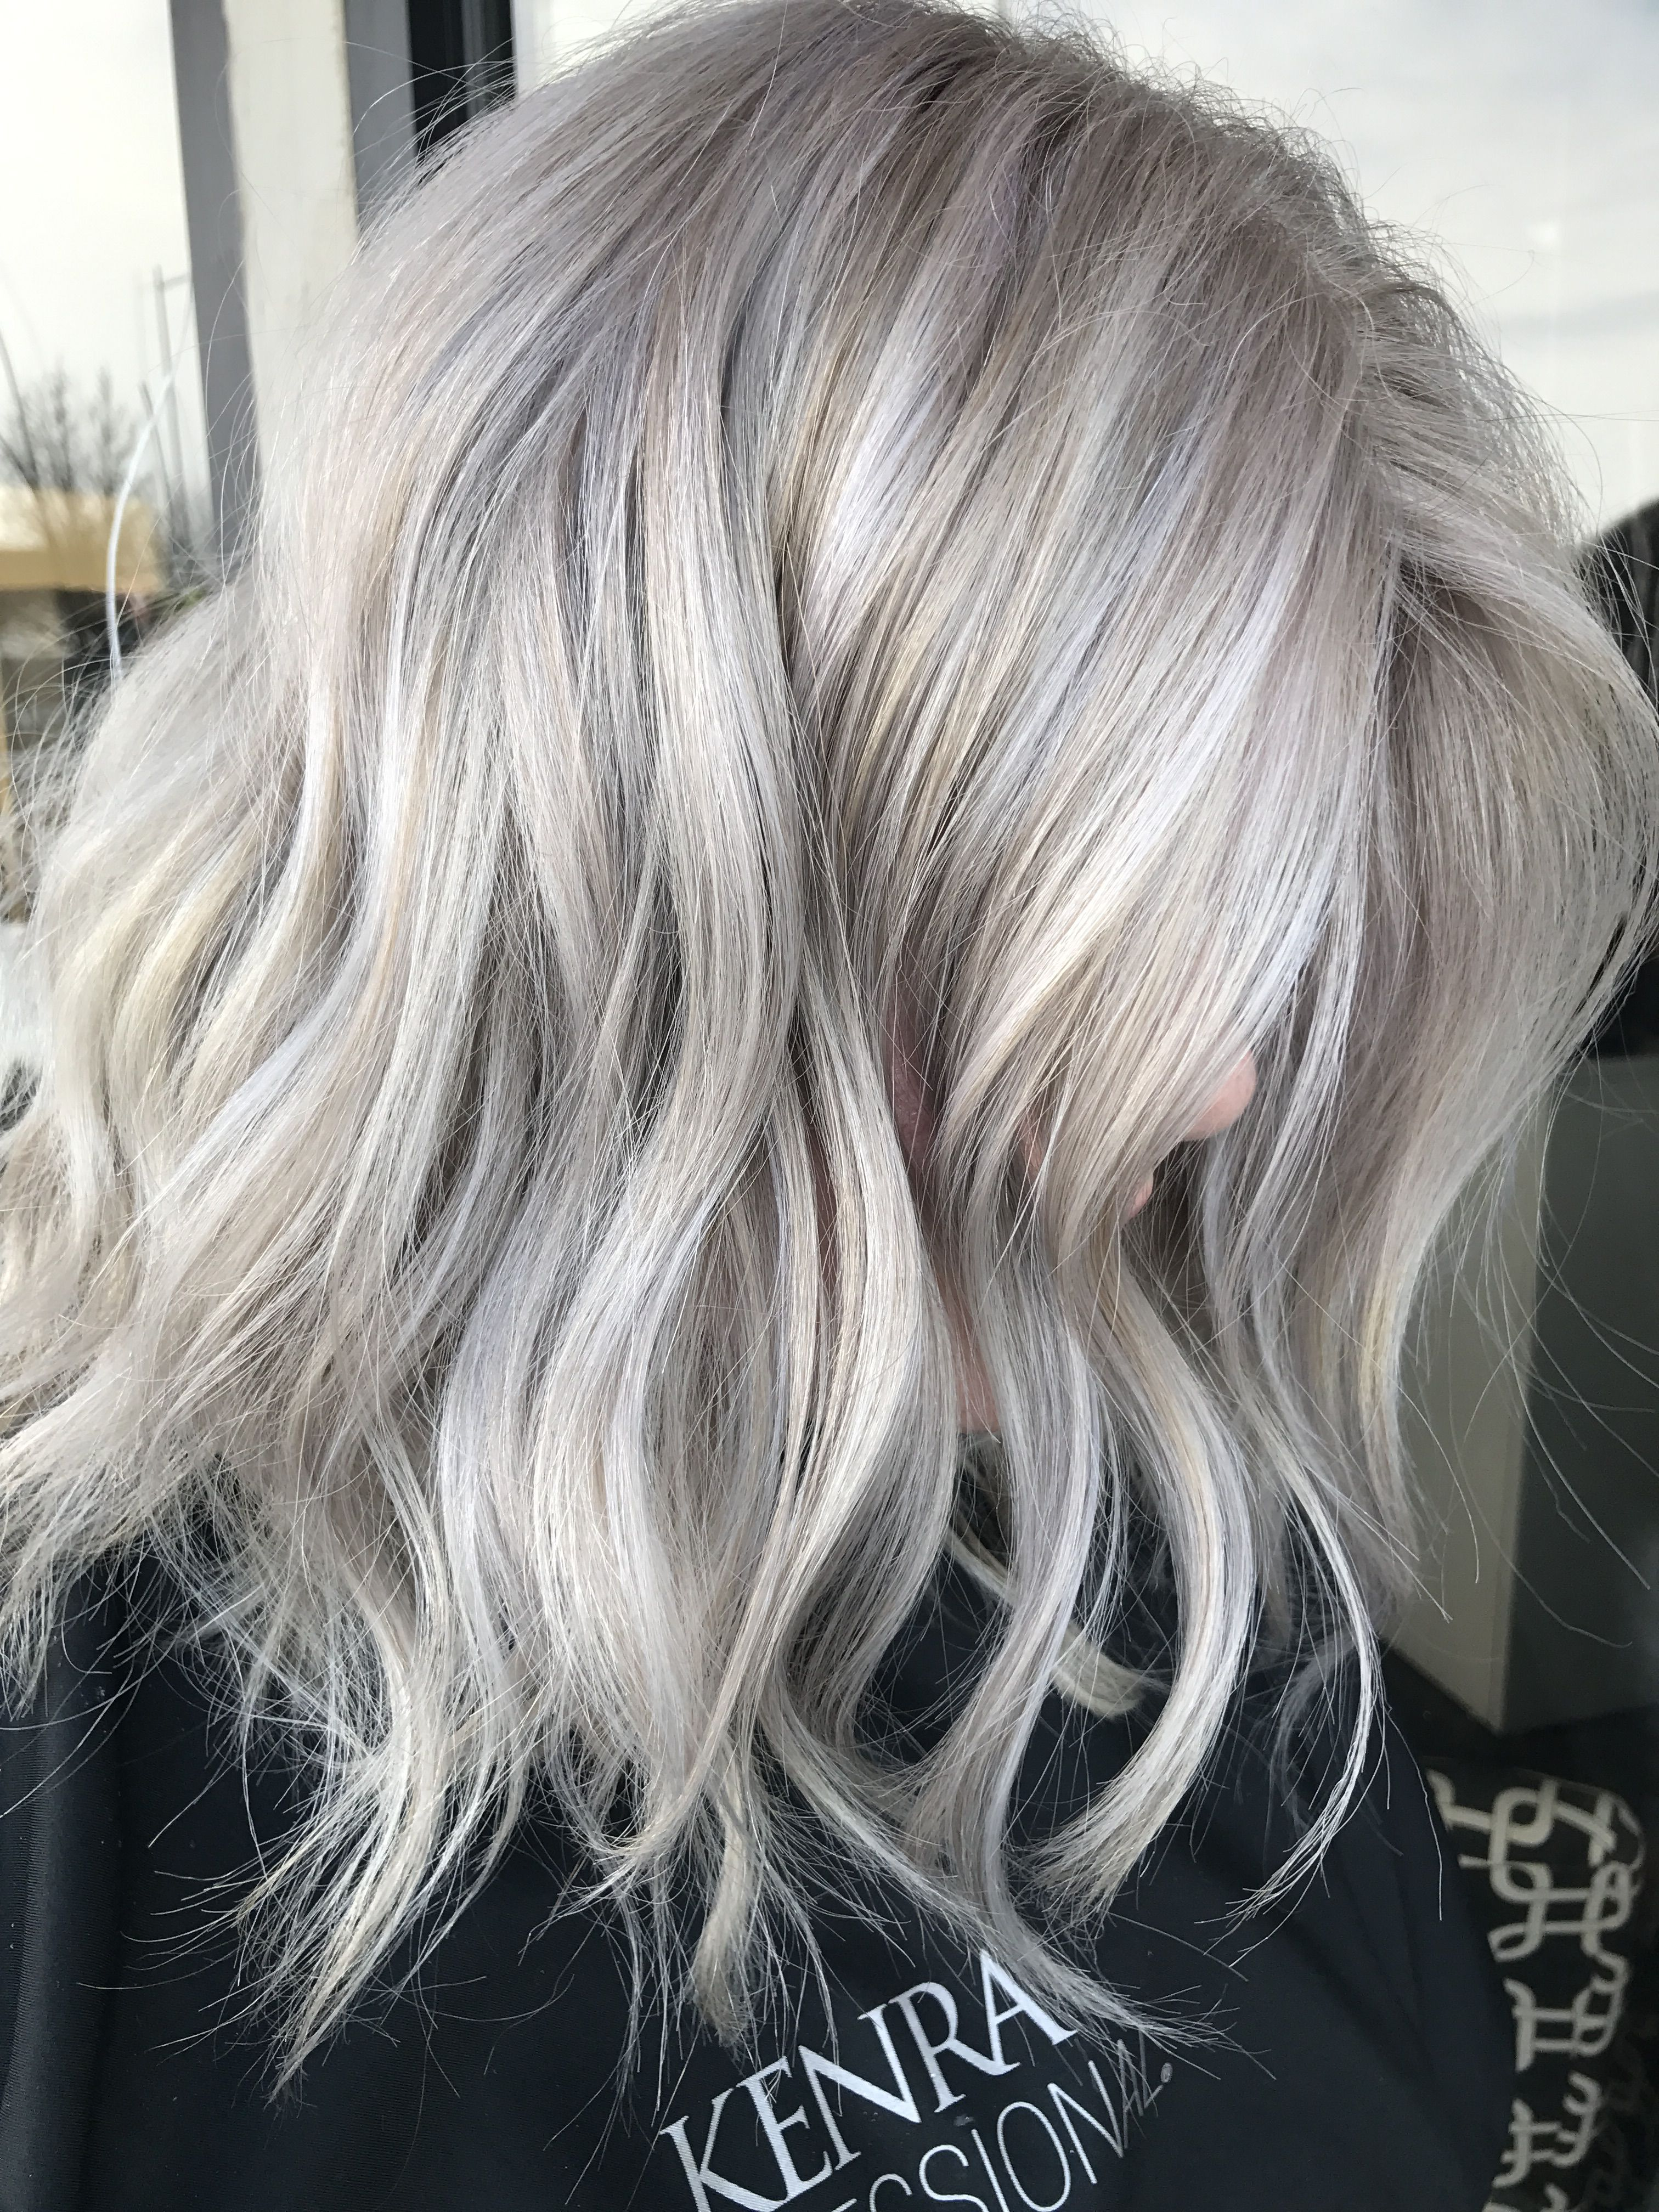 15 Stunning Silver Blonde Hair Color Ideas For 2019 Easy Hairstyles In 2020 Silver Blonde Hair Icy Blonde Hair Blonde Hair Color